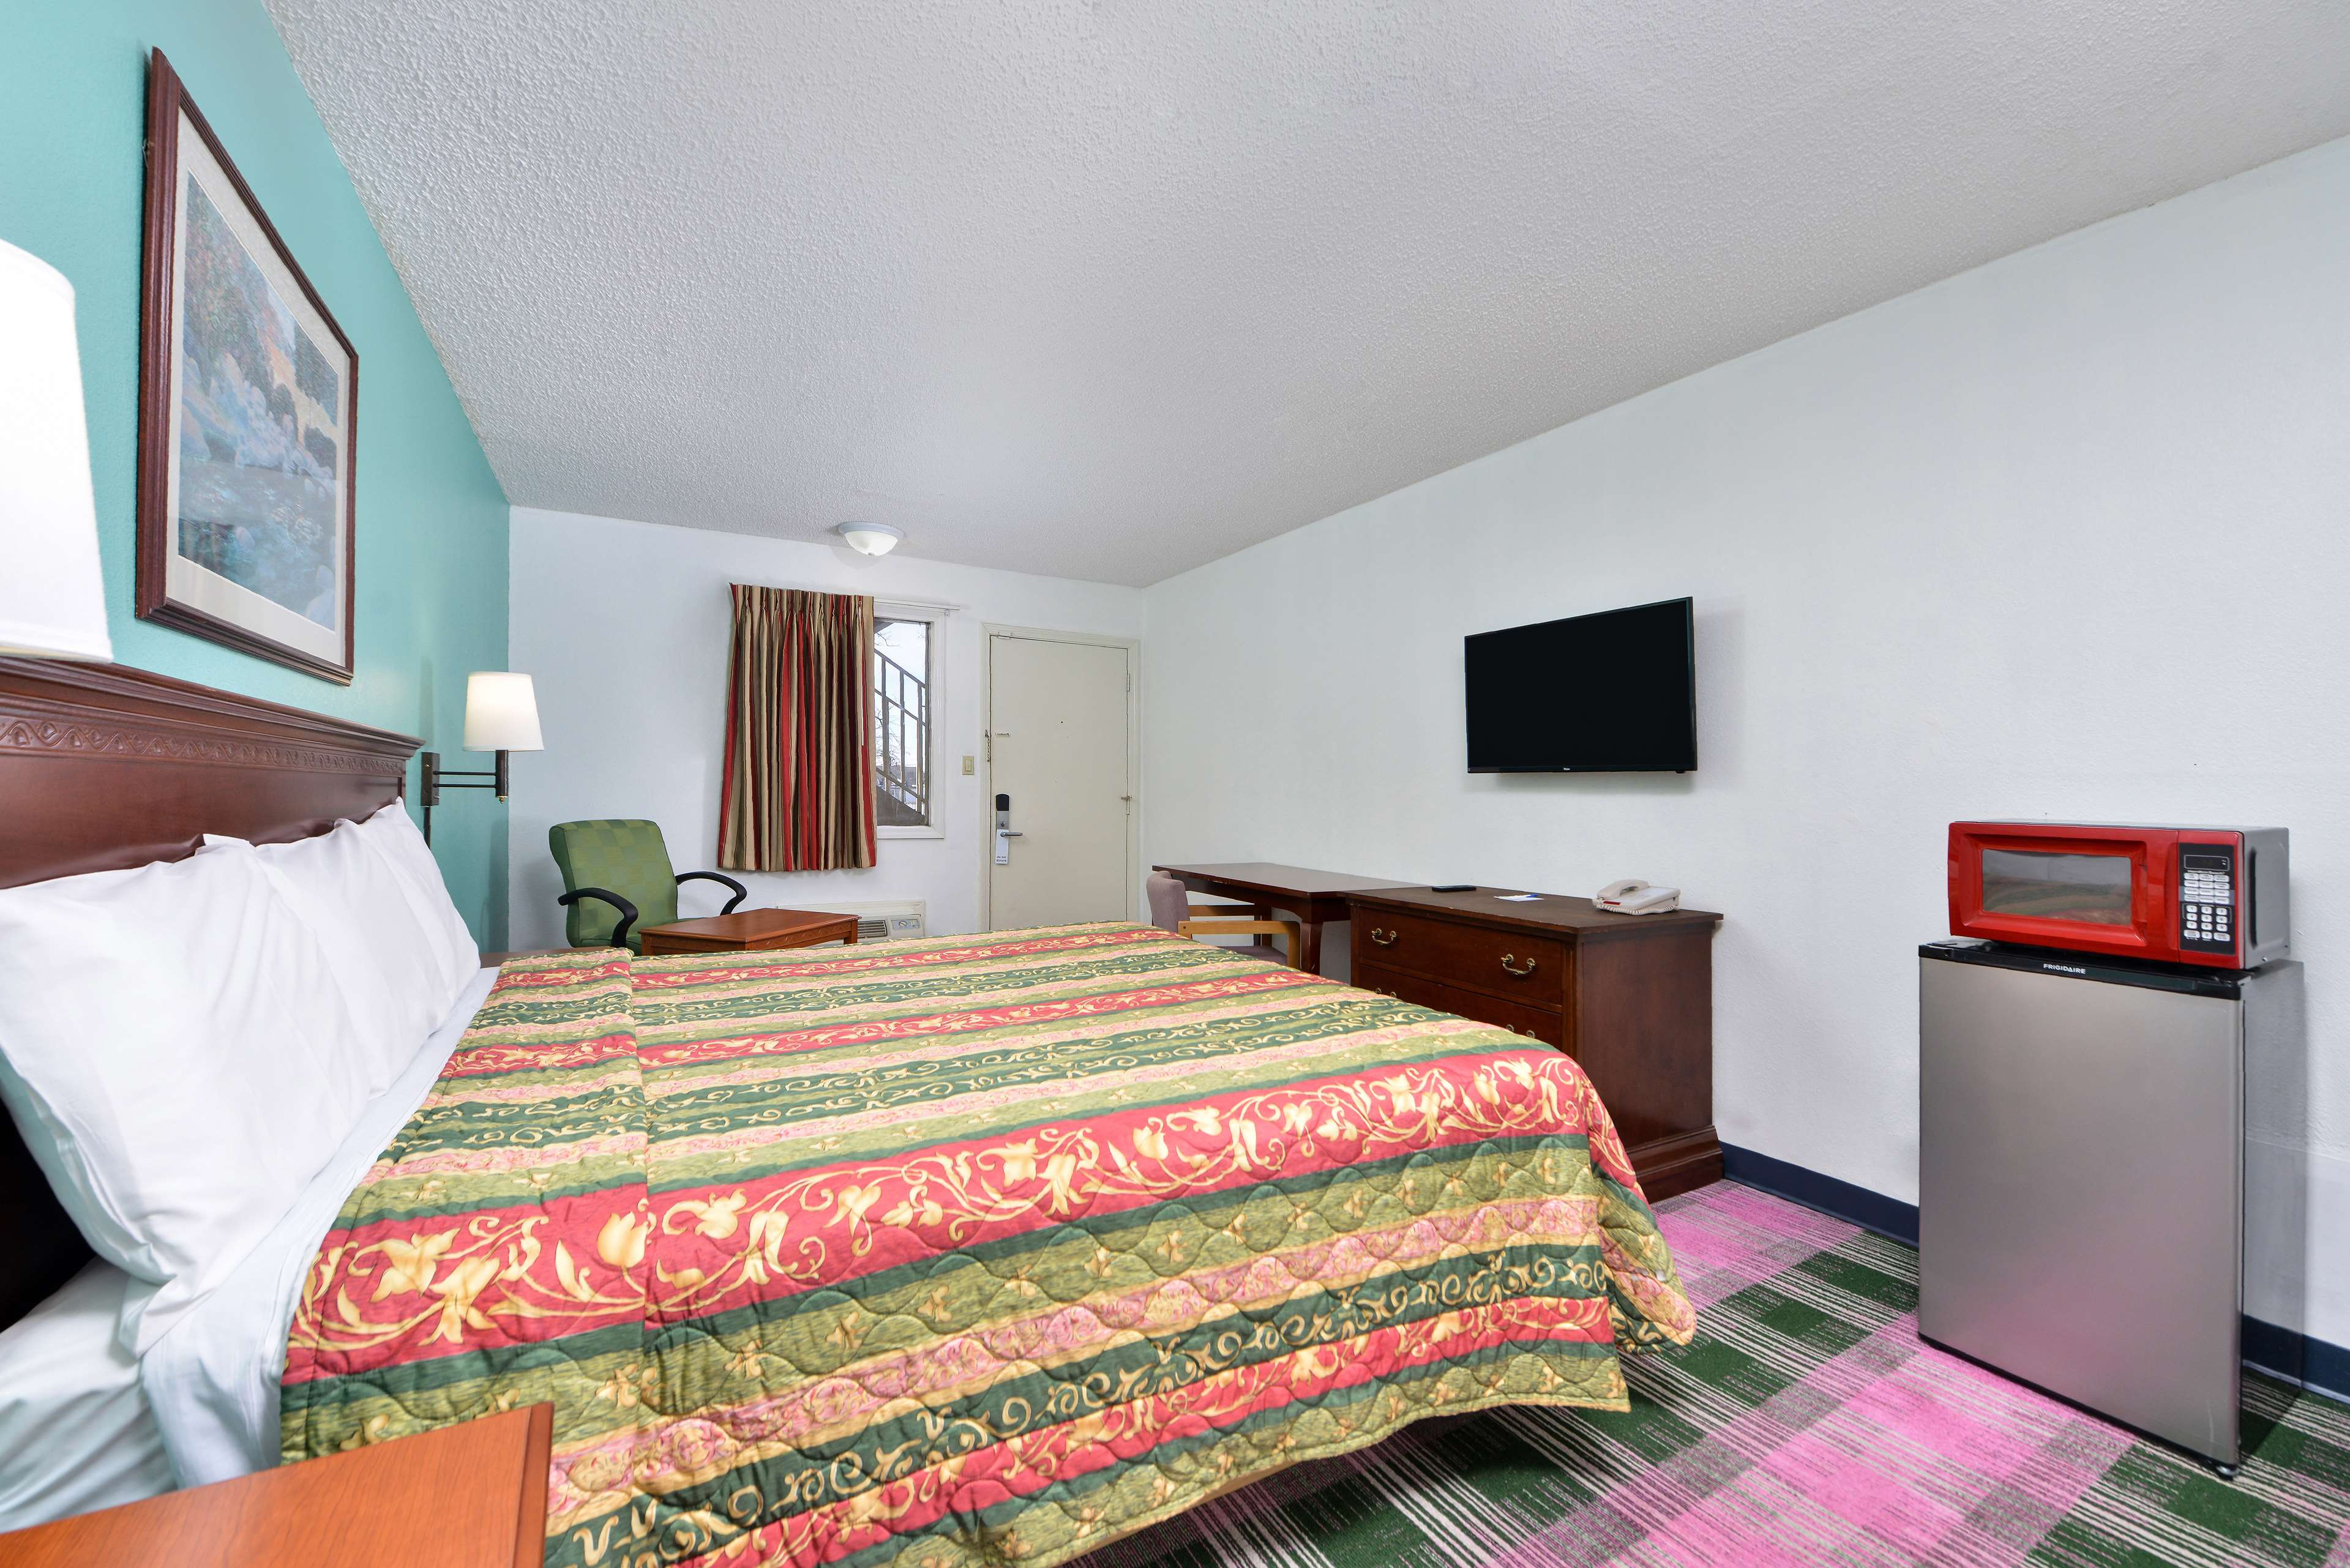 Americas Best Value Inn - Indy South image 7